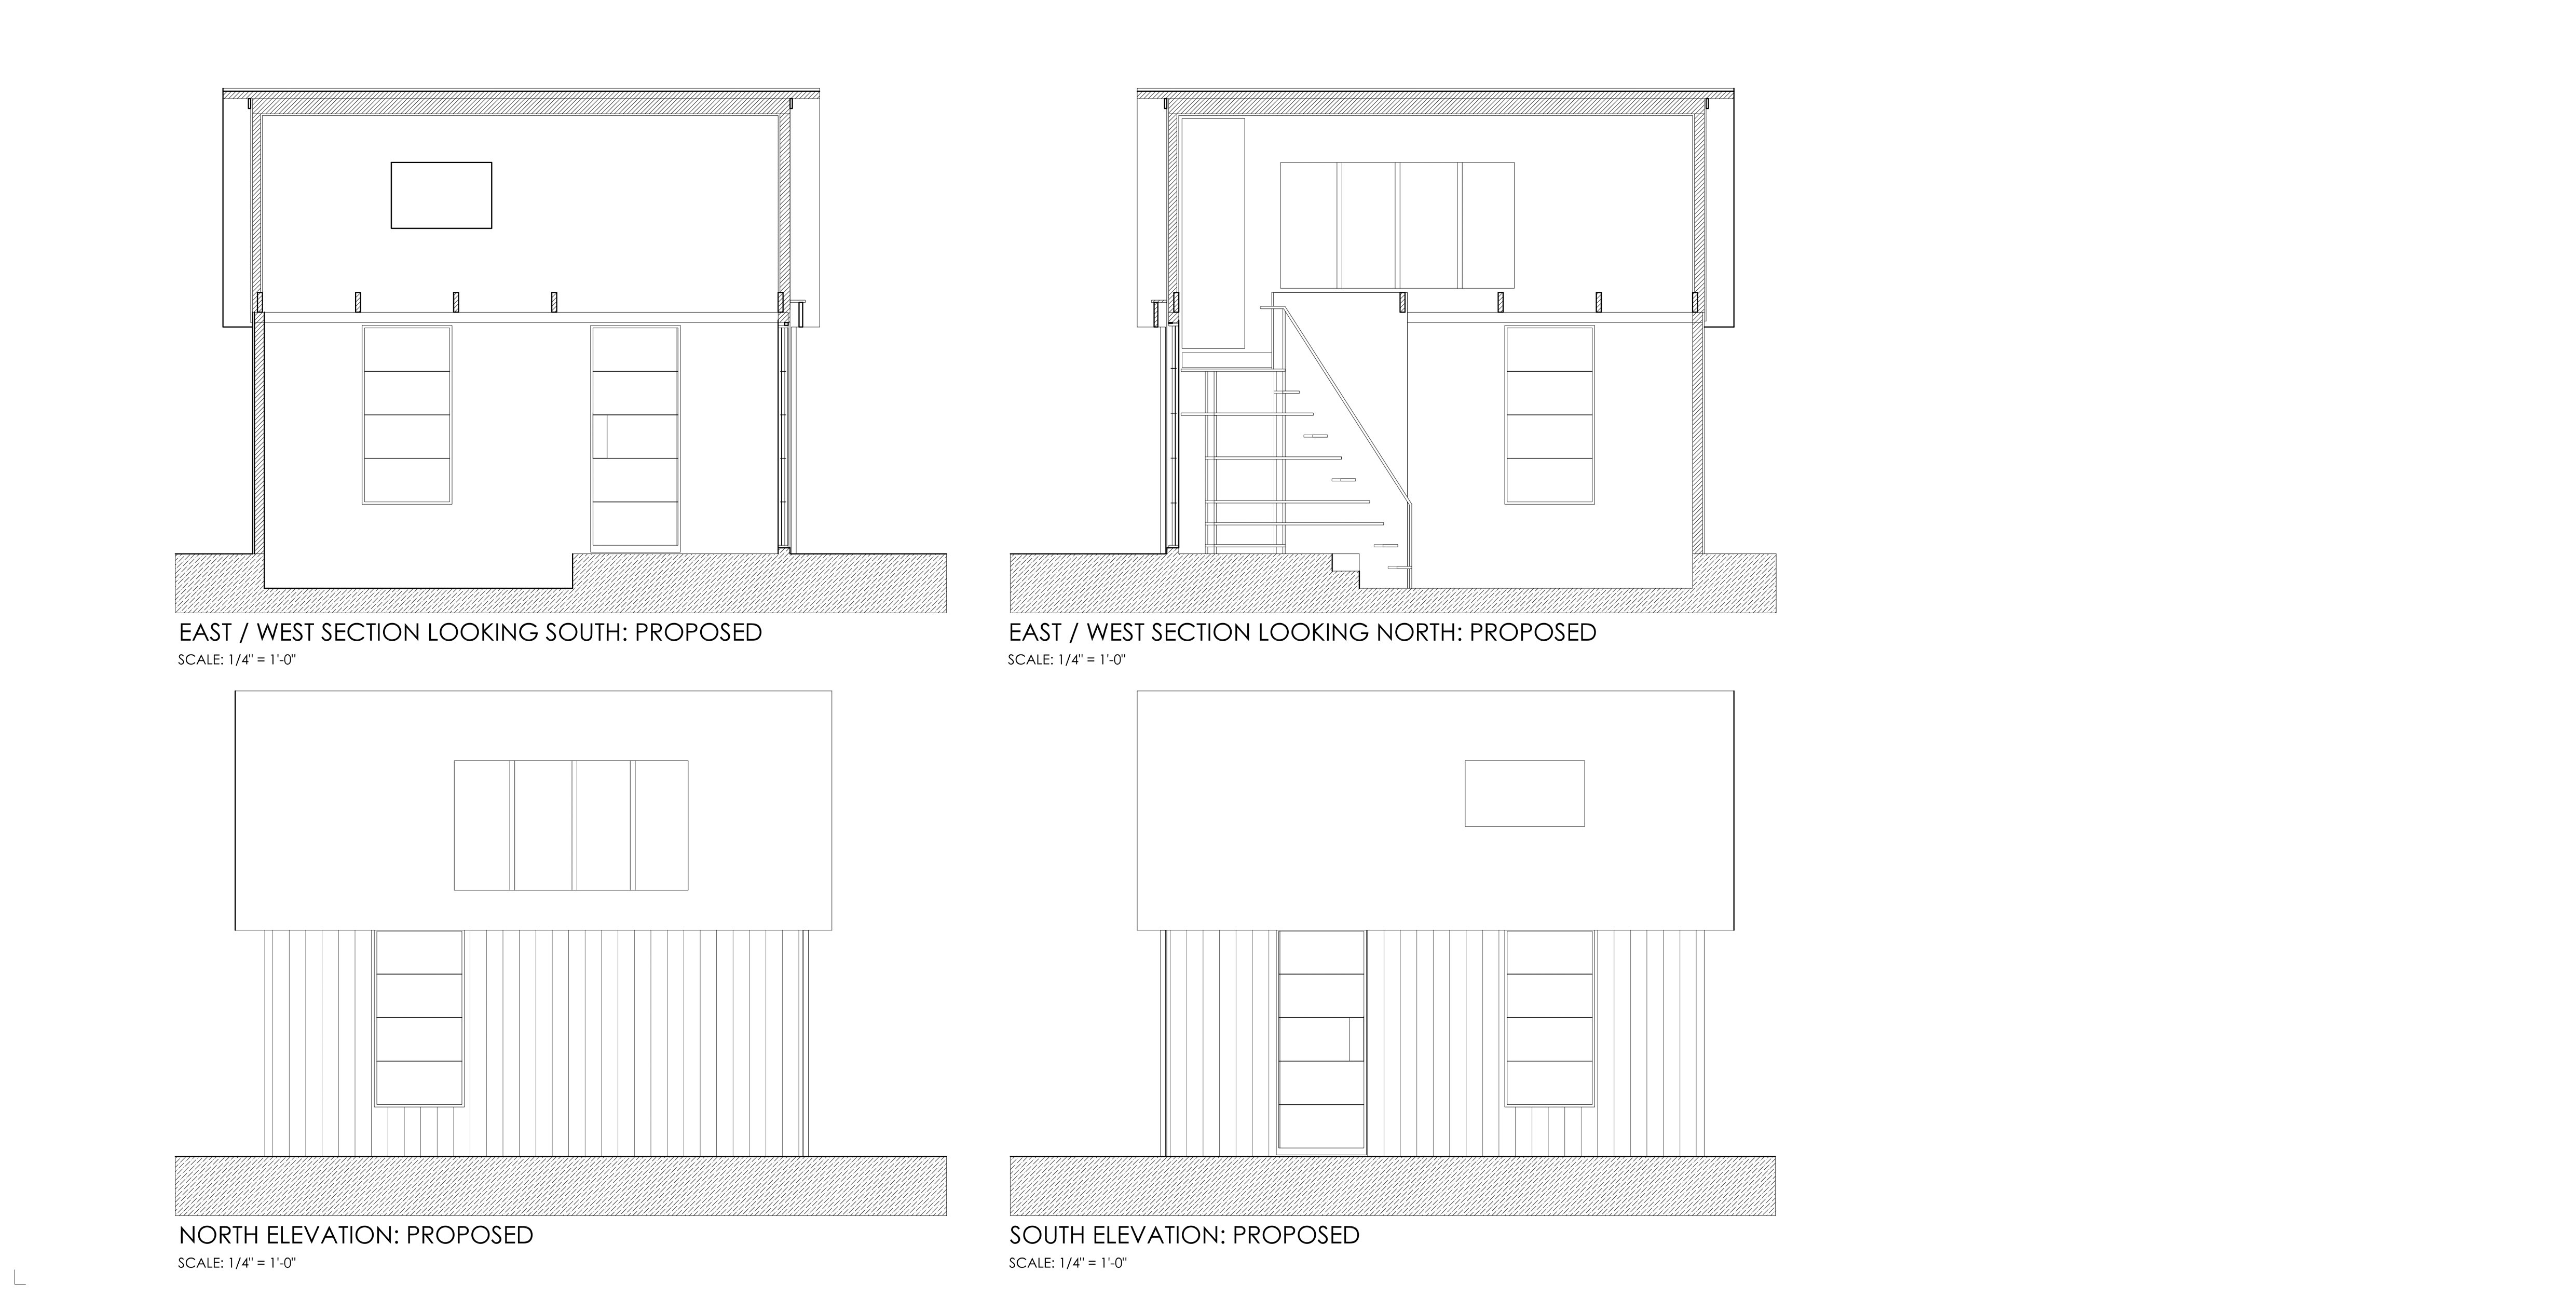 plan, sections, elevations